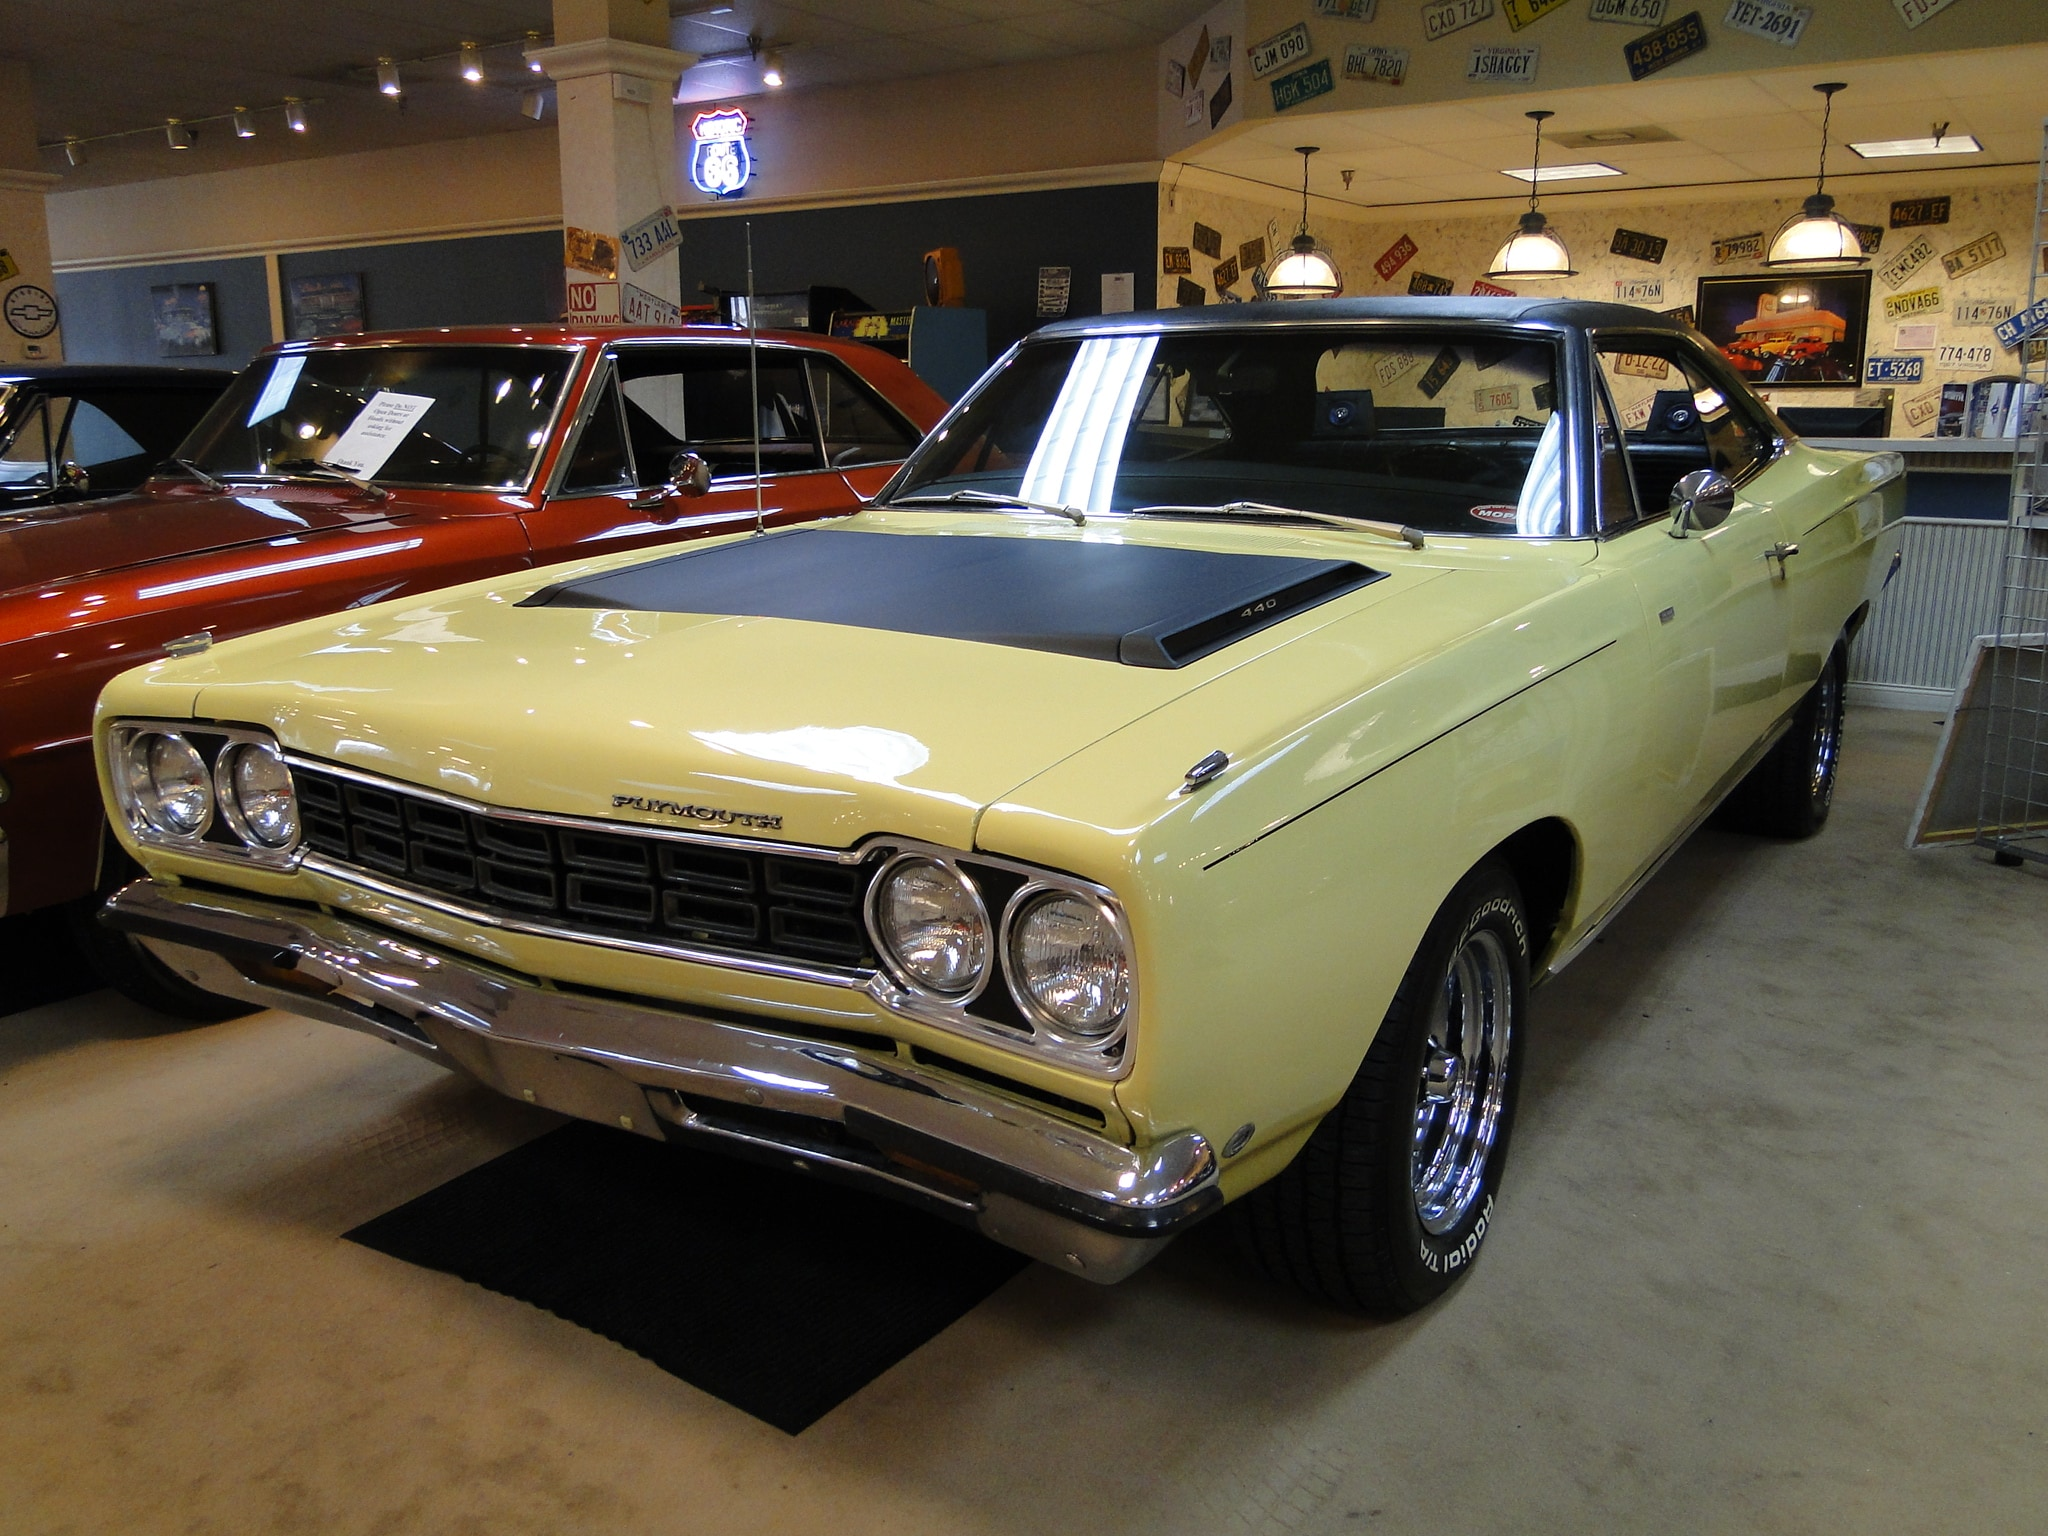 1968 Plymouth RoadRunner 440 Coupe Glen Burnie MD